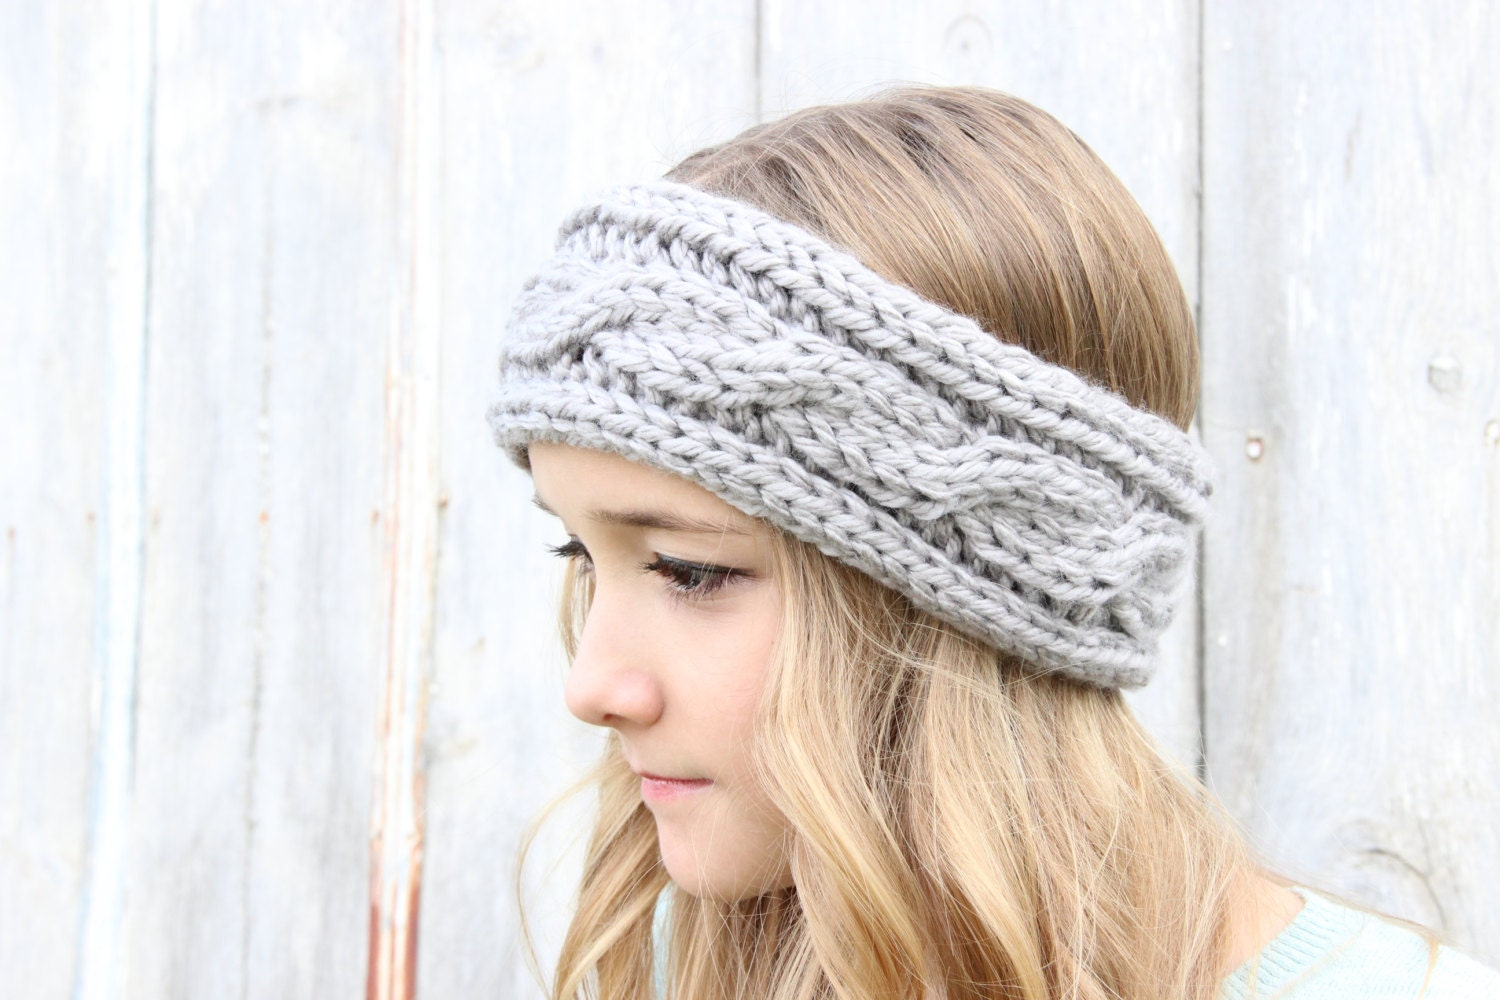 Headband Cable Knit Knitted Headband Winter by SerbyStitches